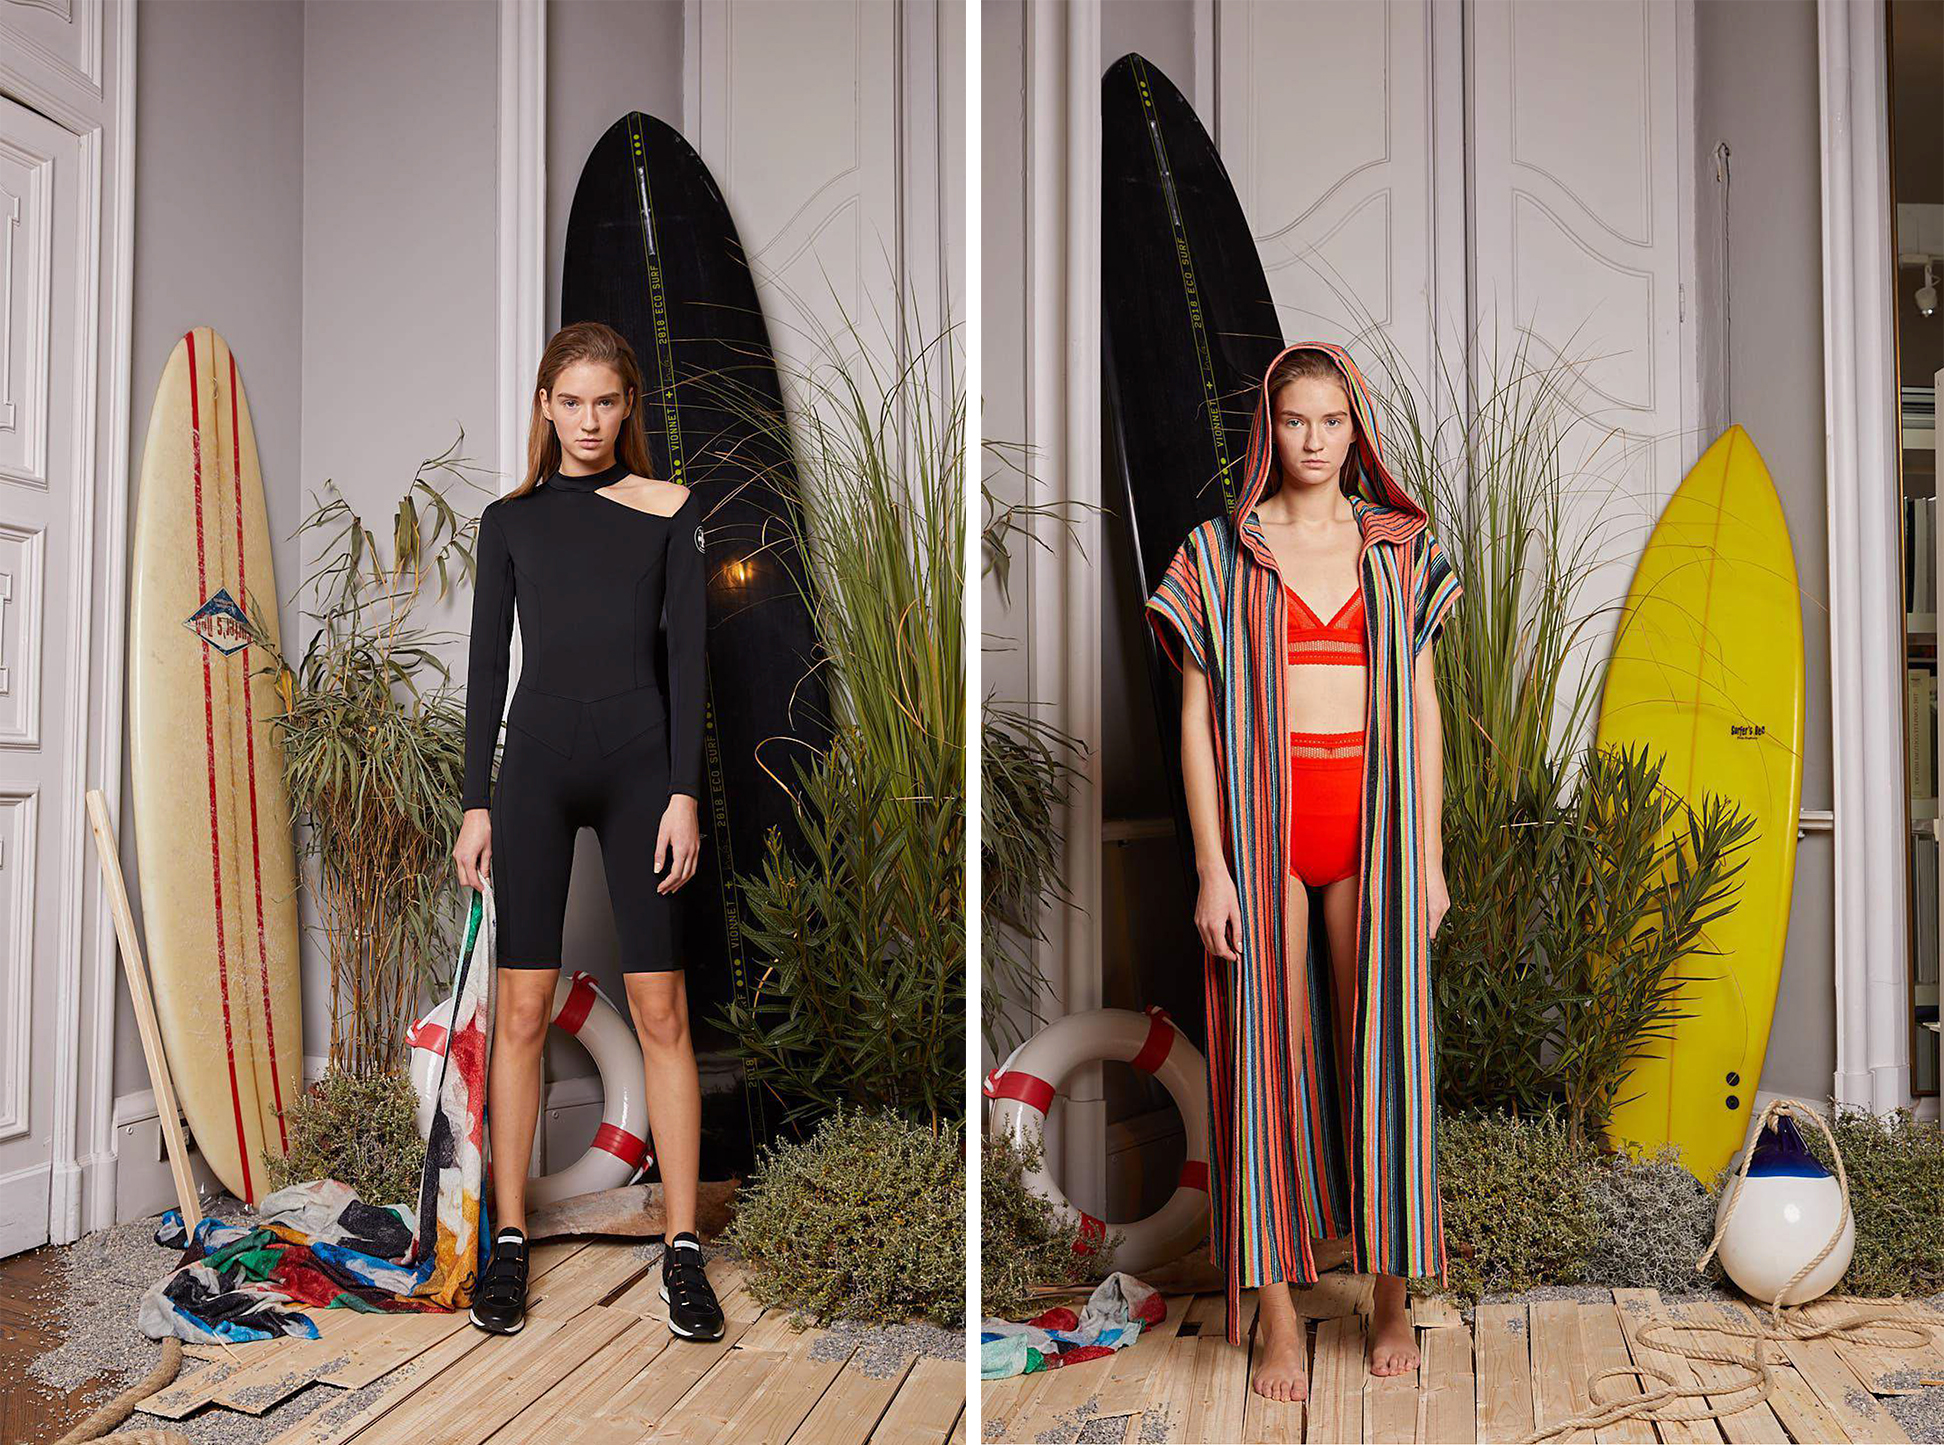 Looks from the Sustainable Surf collection by Vionnet x Marc Quinn